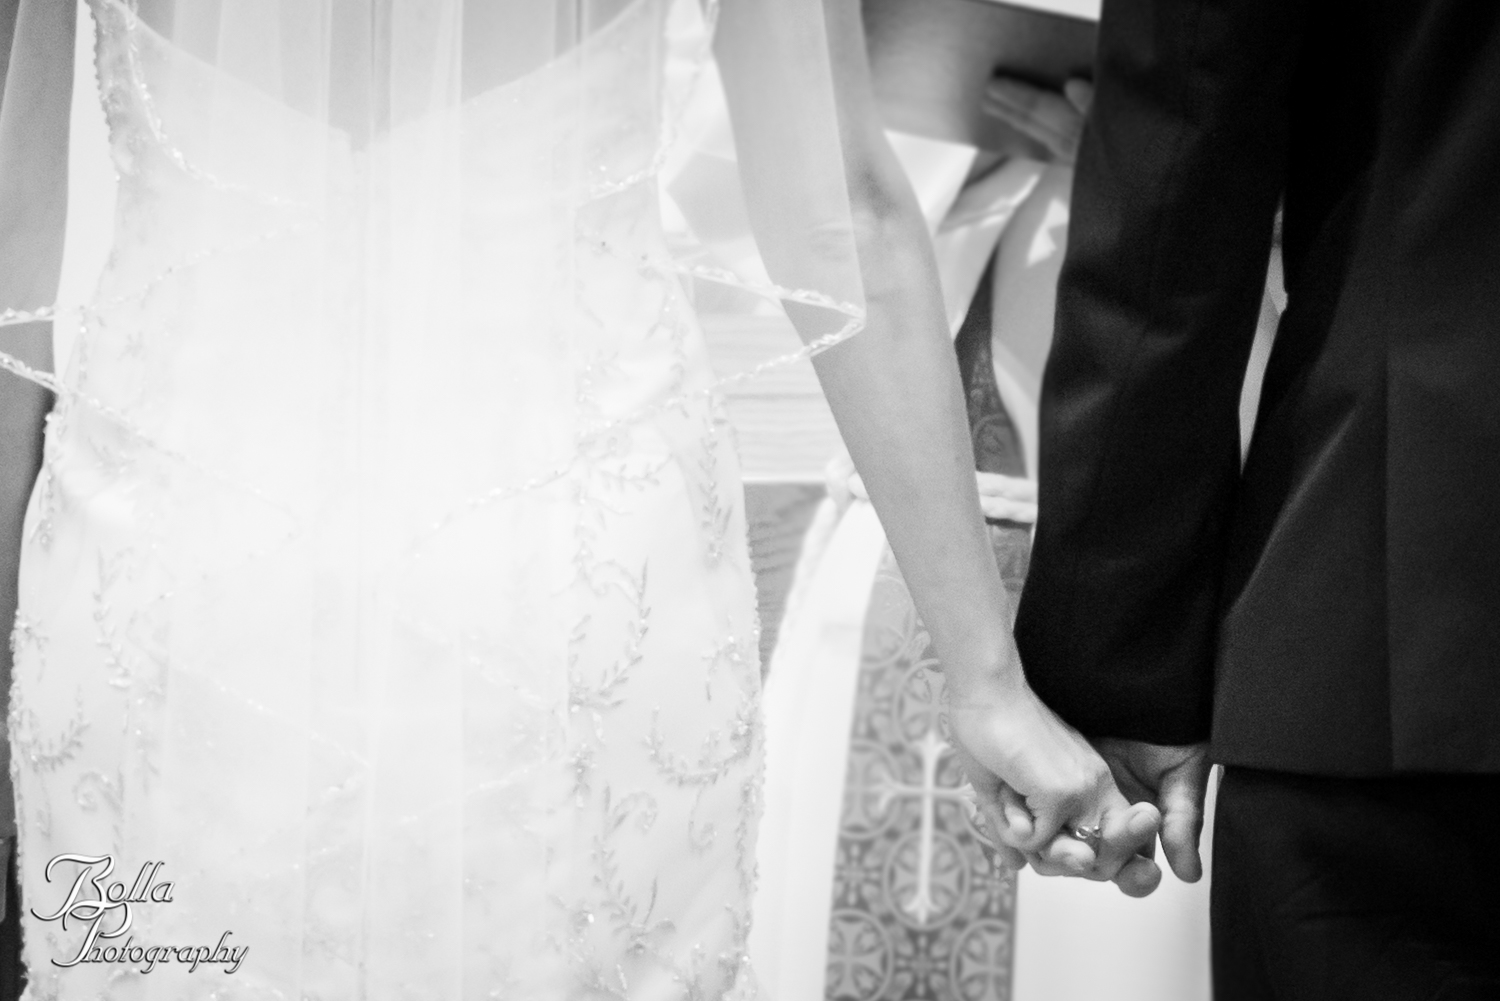 Bolla_Photography_St_Louis_wedding_photographer_Edwardsville_Highland-0186.jpg